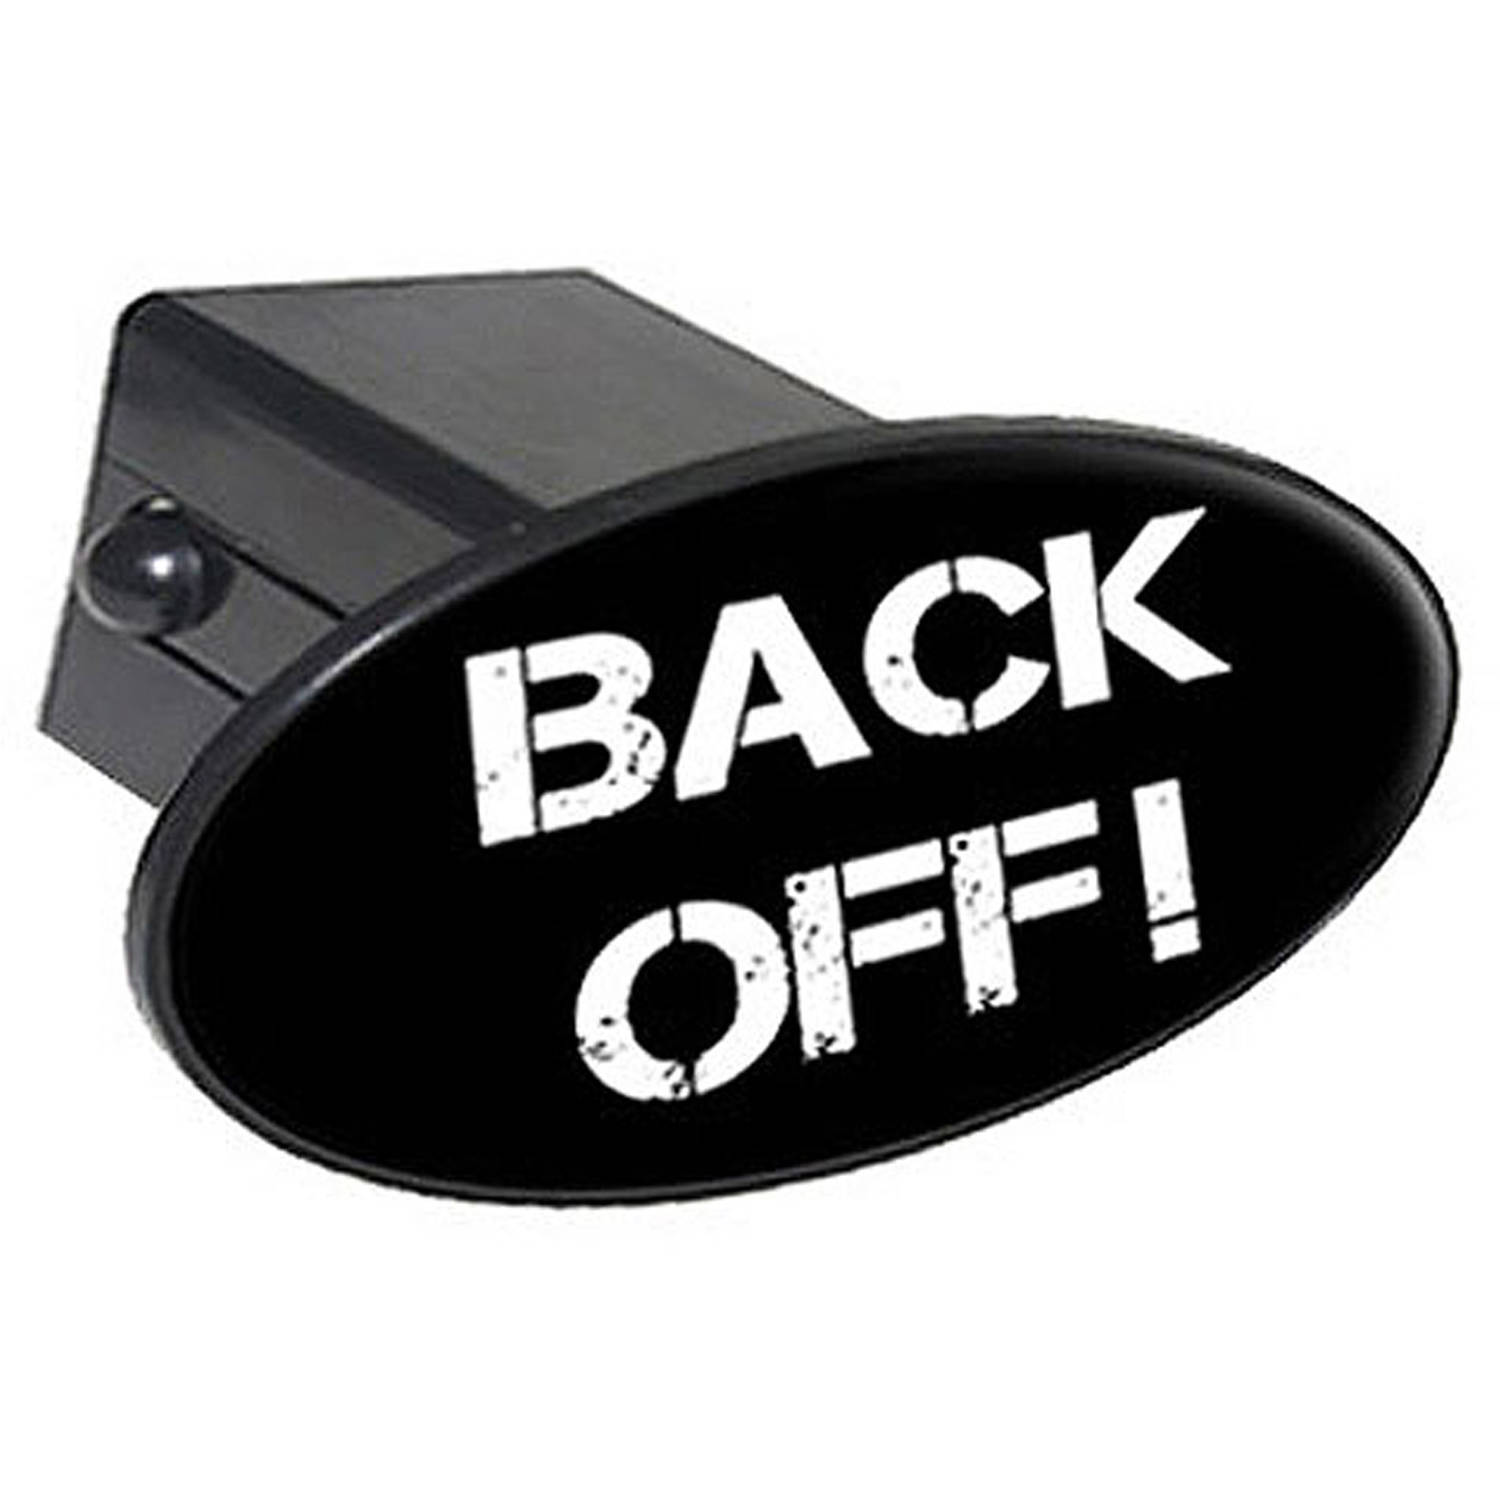 "Back Off, No Tailgating 2"" Oval Tow Trailer Hitch Cover Plug Insert"